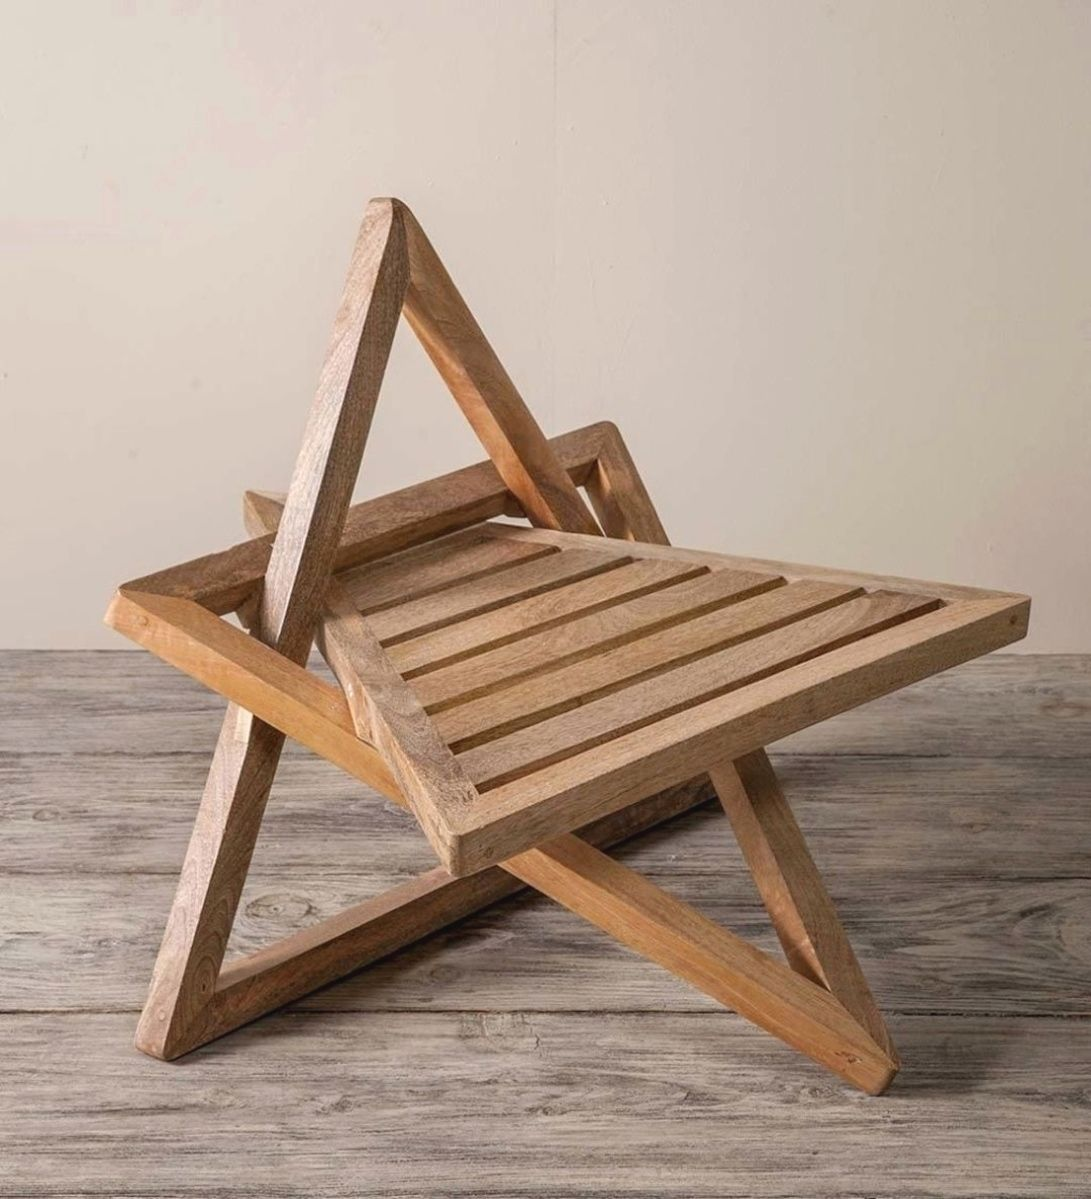 What You Think What If I Told You That You Could Get Your Hands On 16 000 Woodworking Wooden Pallet Furniture Meditation Chair Wooden Chair Plans